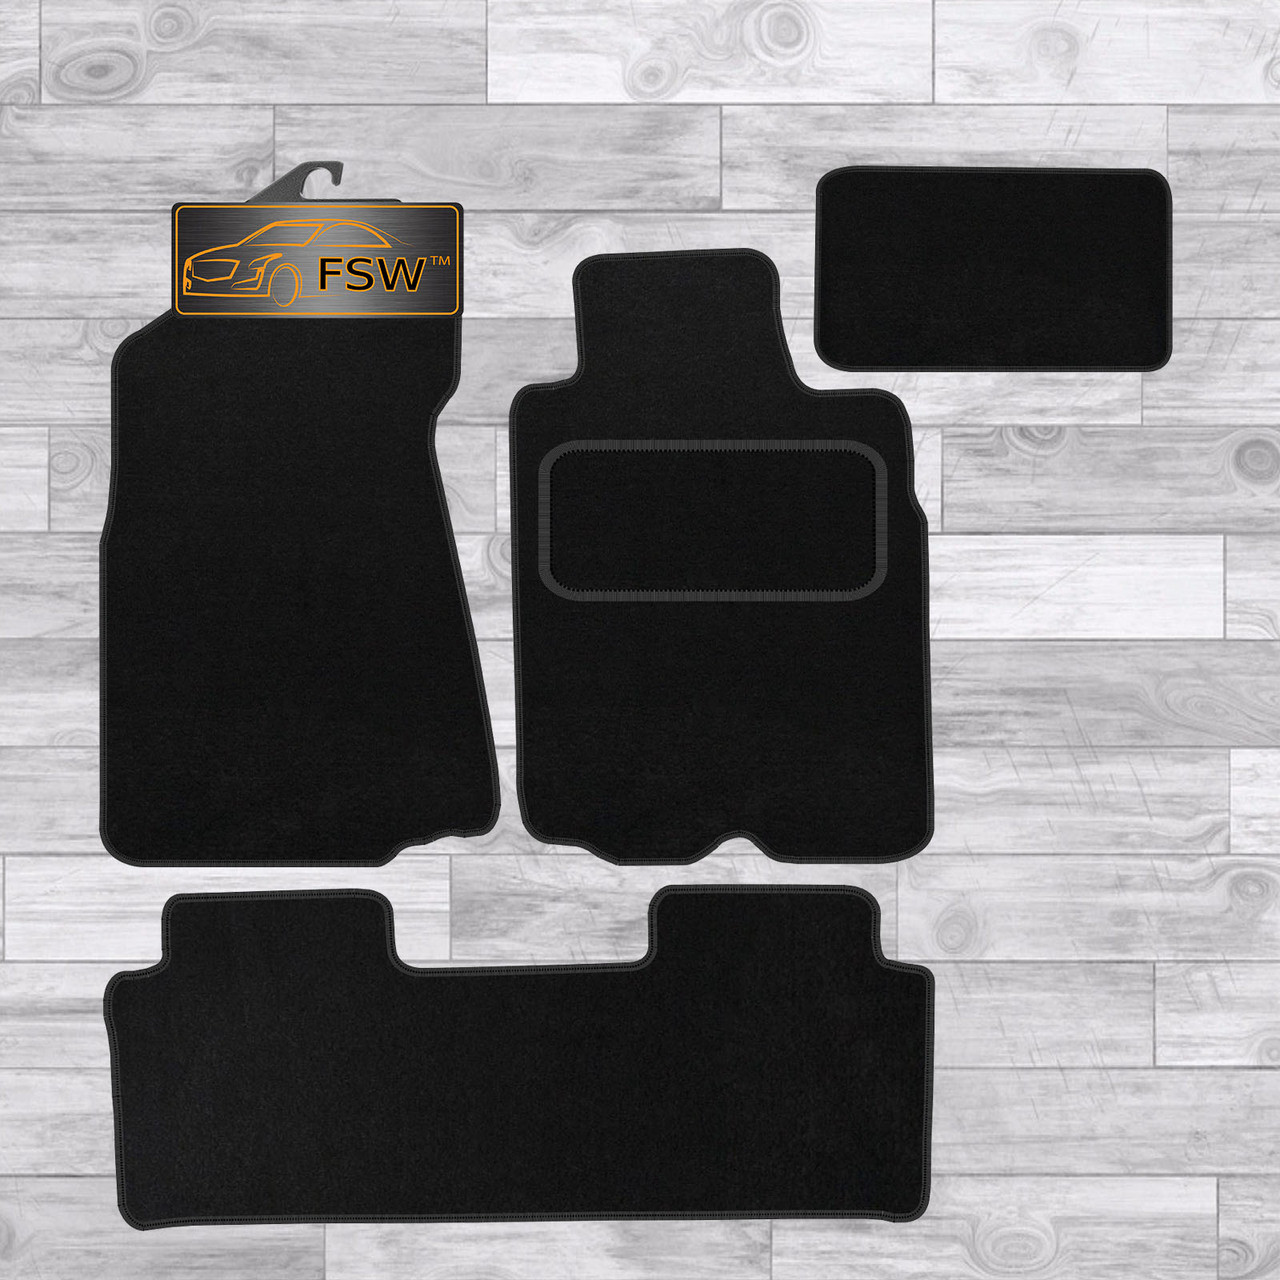 Honda Crv 2002-2006 Black Tailored Floor Car Mats Carpet //Rubber